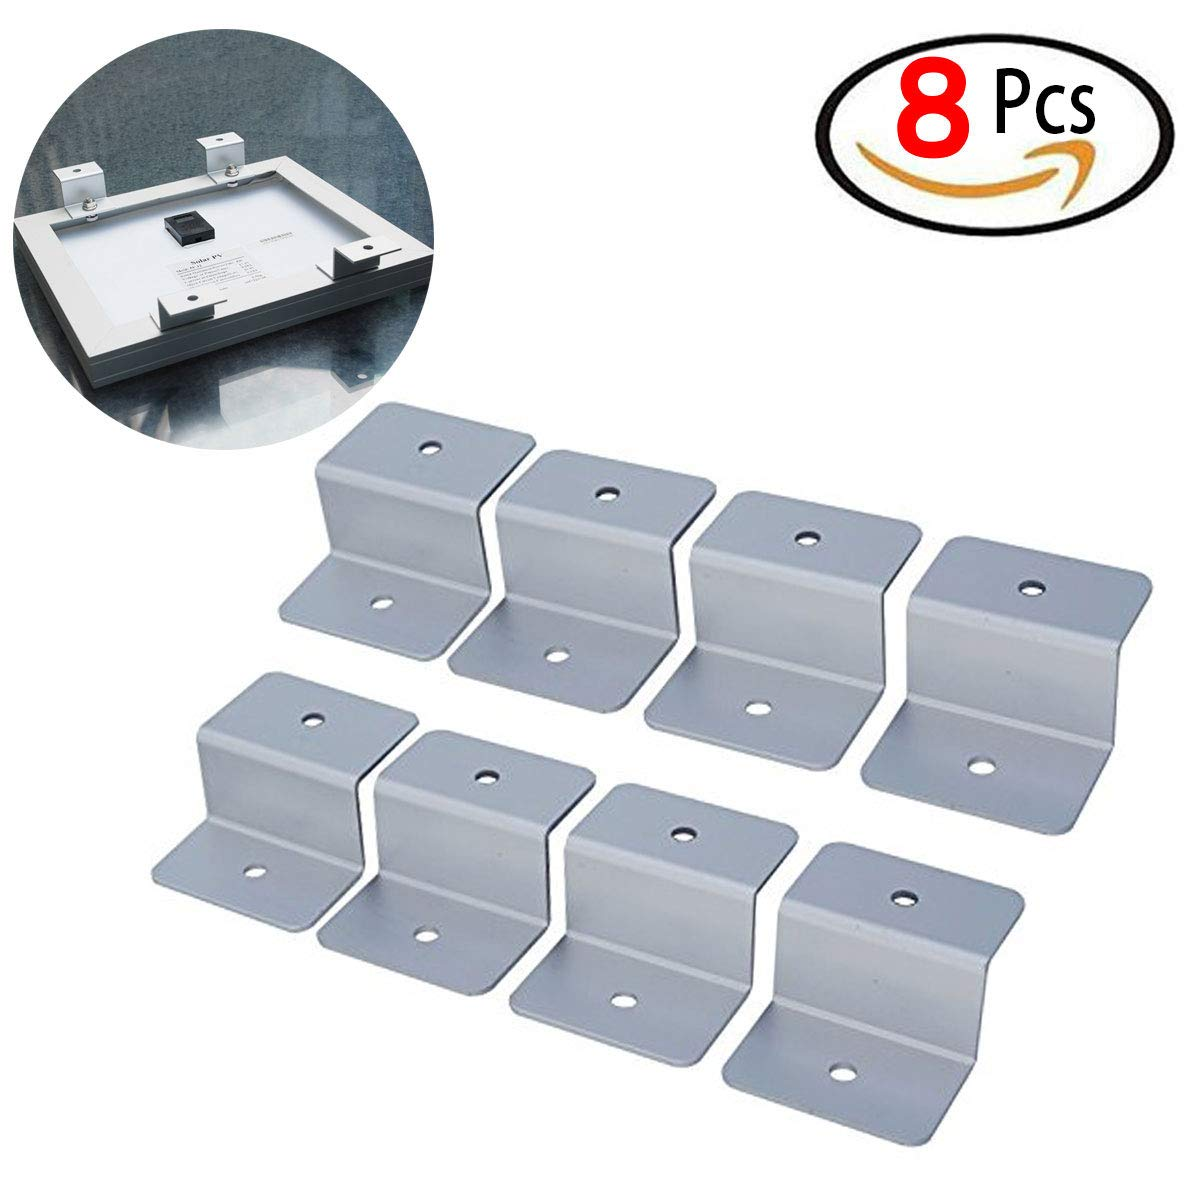 8 Pcs - Solar Panel Mount Mounting Z Bracket, Heavy Duty Solar Panel Brackets Mount Mounting with Nuts and Bolts, Solar Panel Accessory for Boat, Roof, Wall and other off Gird Installation